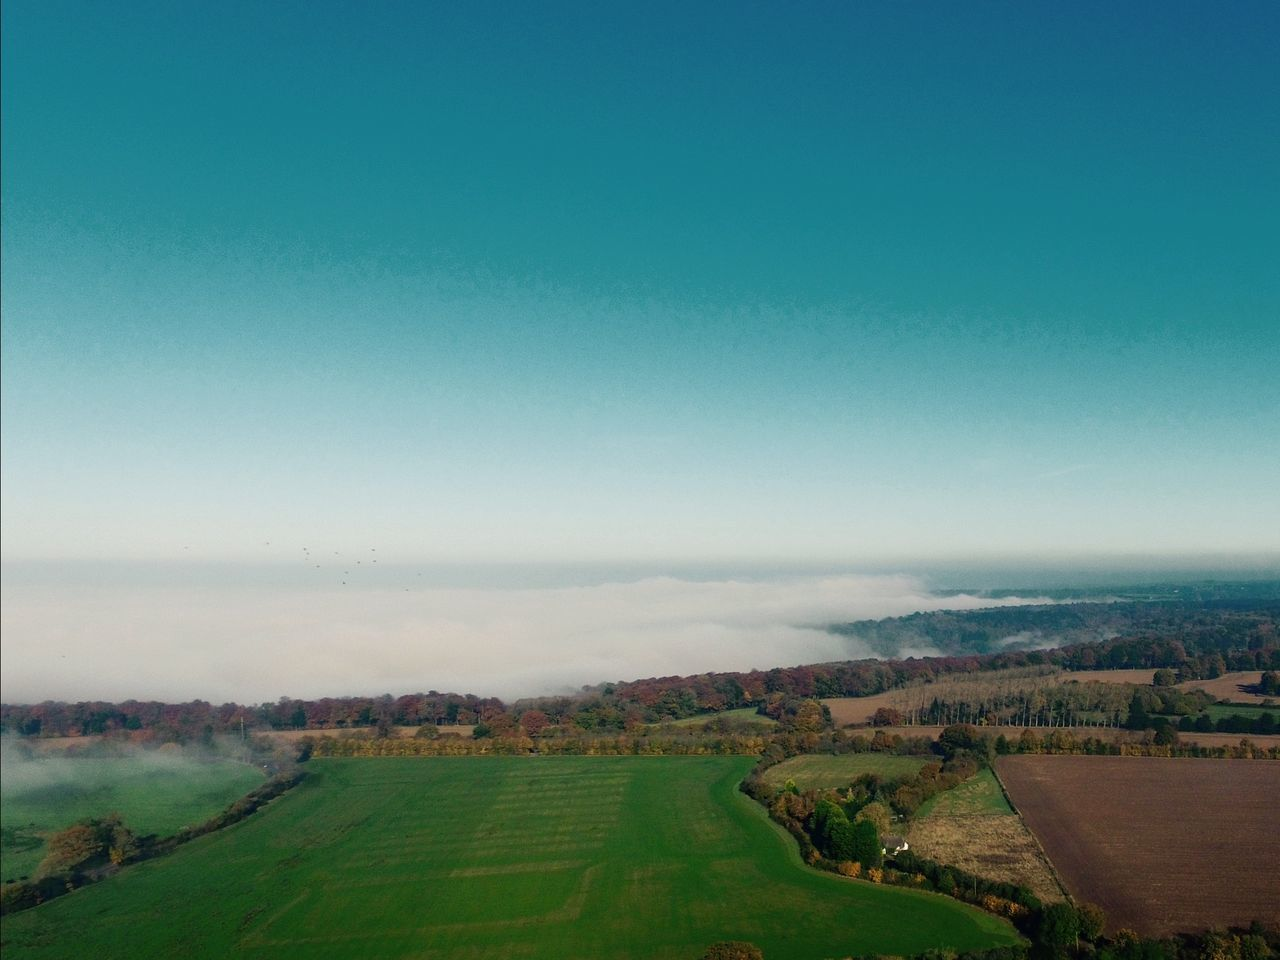 Dronephotography Check This Out Hello World Enjoying Life Taking Photos Landscape Misty Mist Unmanneddrones Capture The Moment Landscapes With WhiteWall